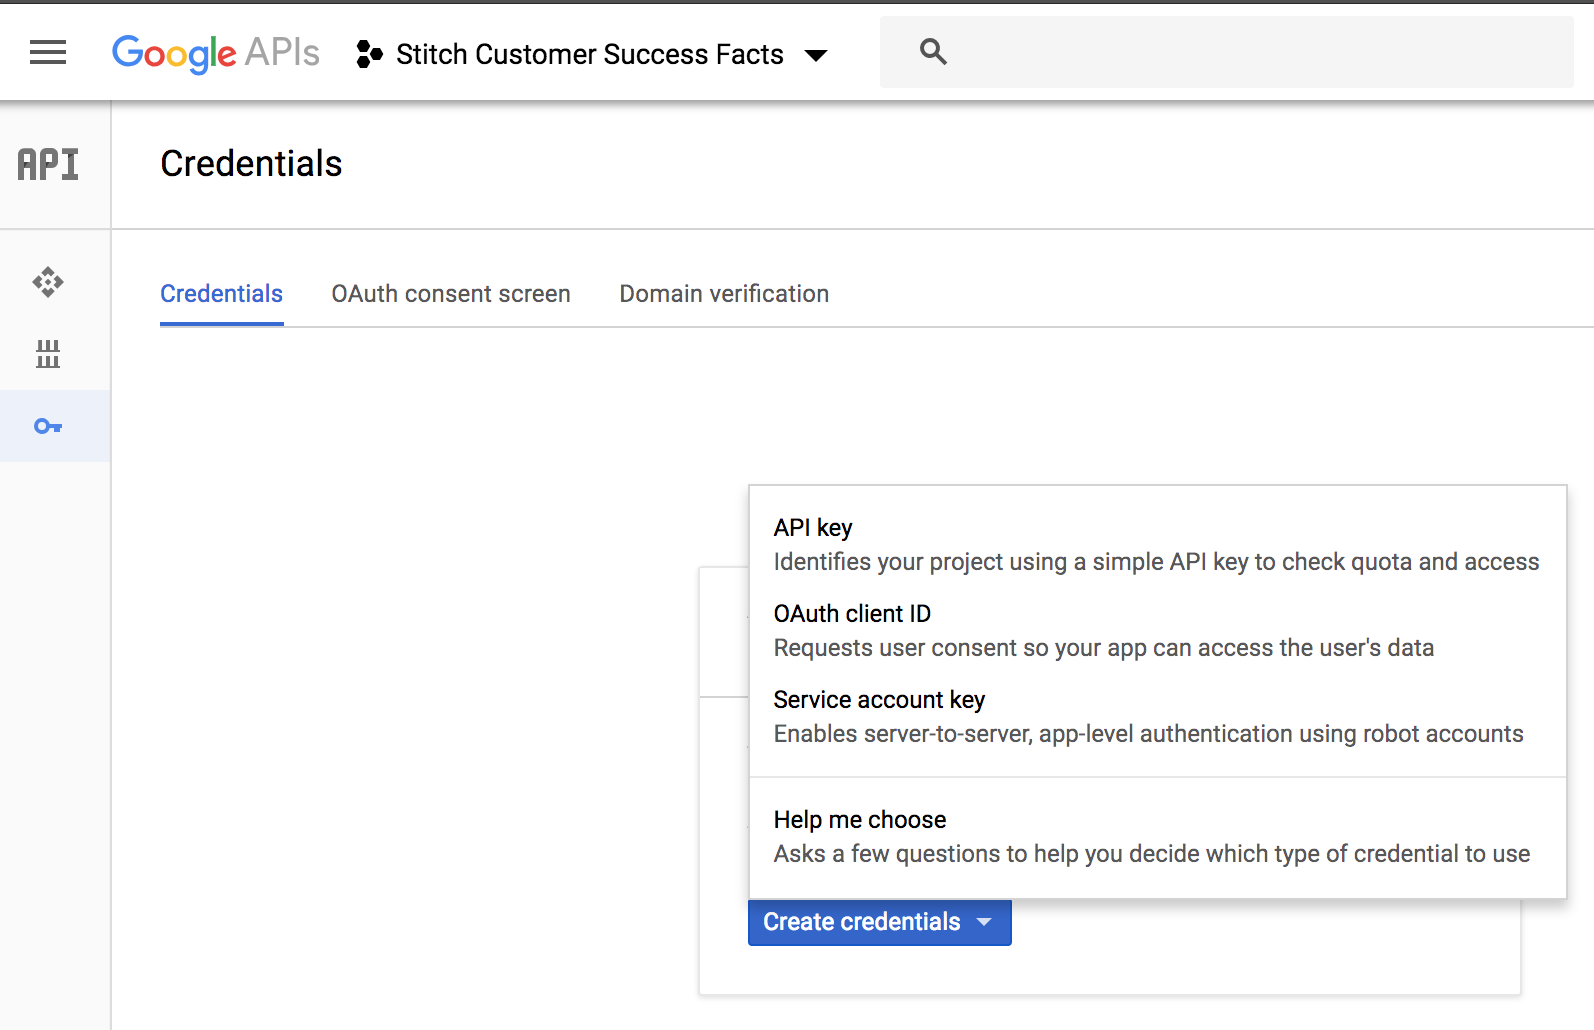 Select OAuth client ID > Consent > Web application